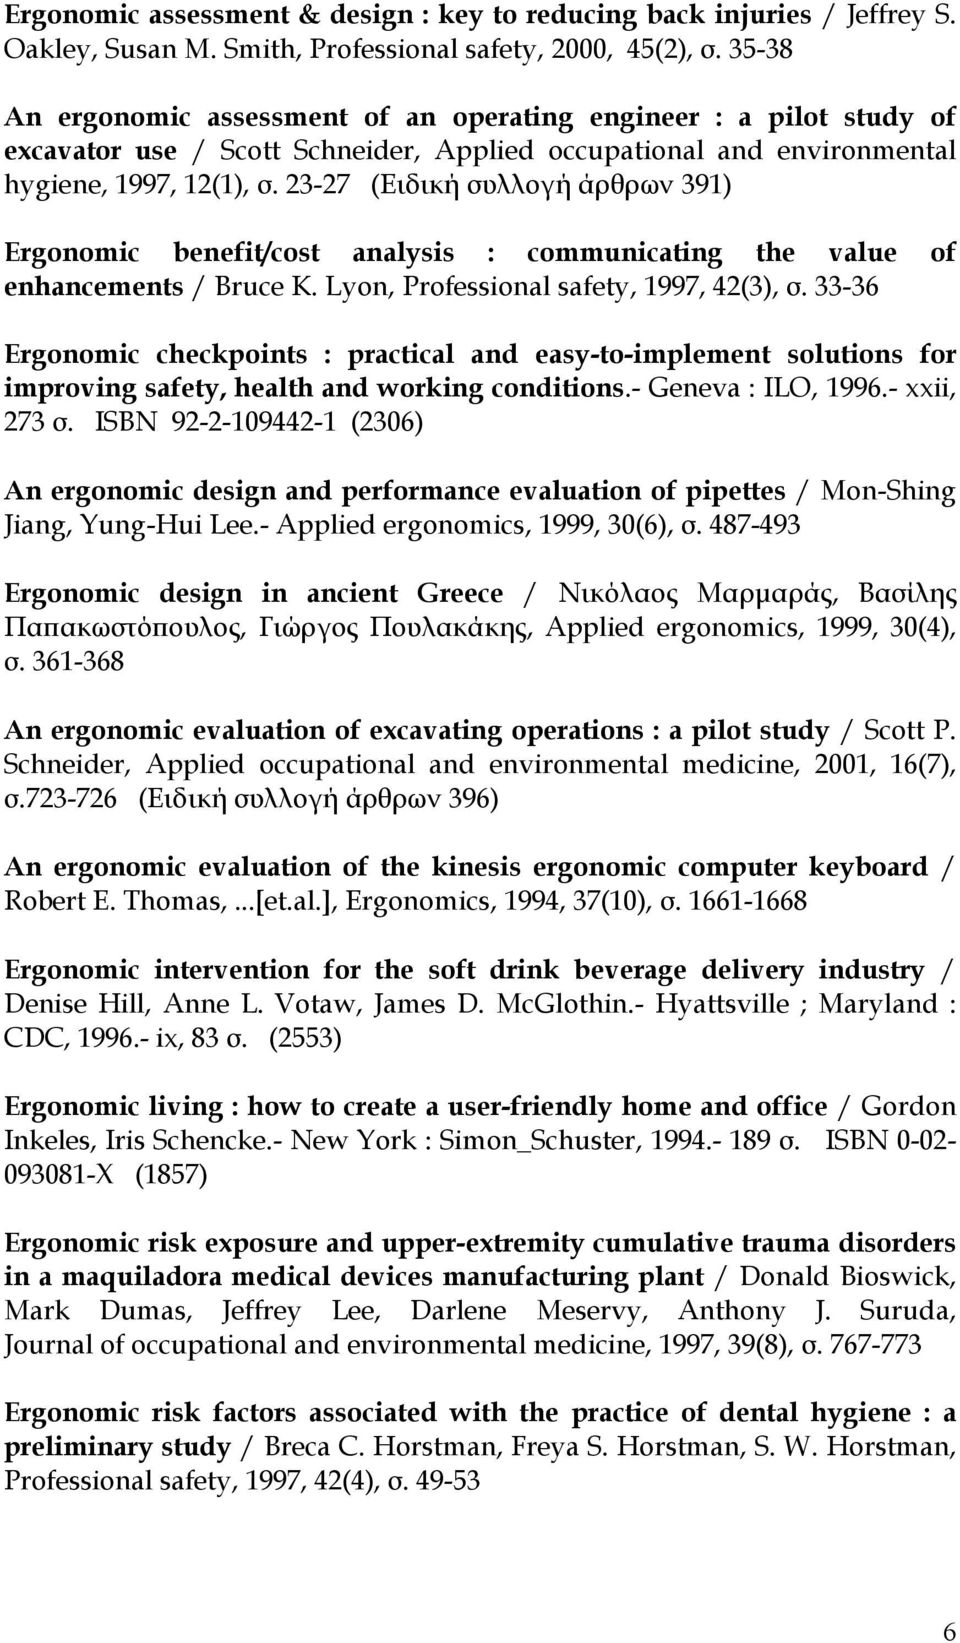 23-27 (Ειδική συλλογή άρθρων 391) Ergonomic benefit/cost analysis : communicating the value of enhancements / Bruce K. Lyon, Professional safety, 1997, 42(3), σ.